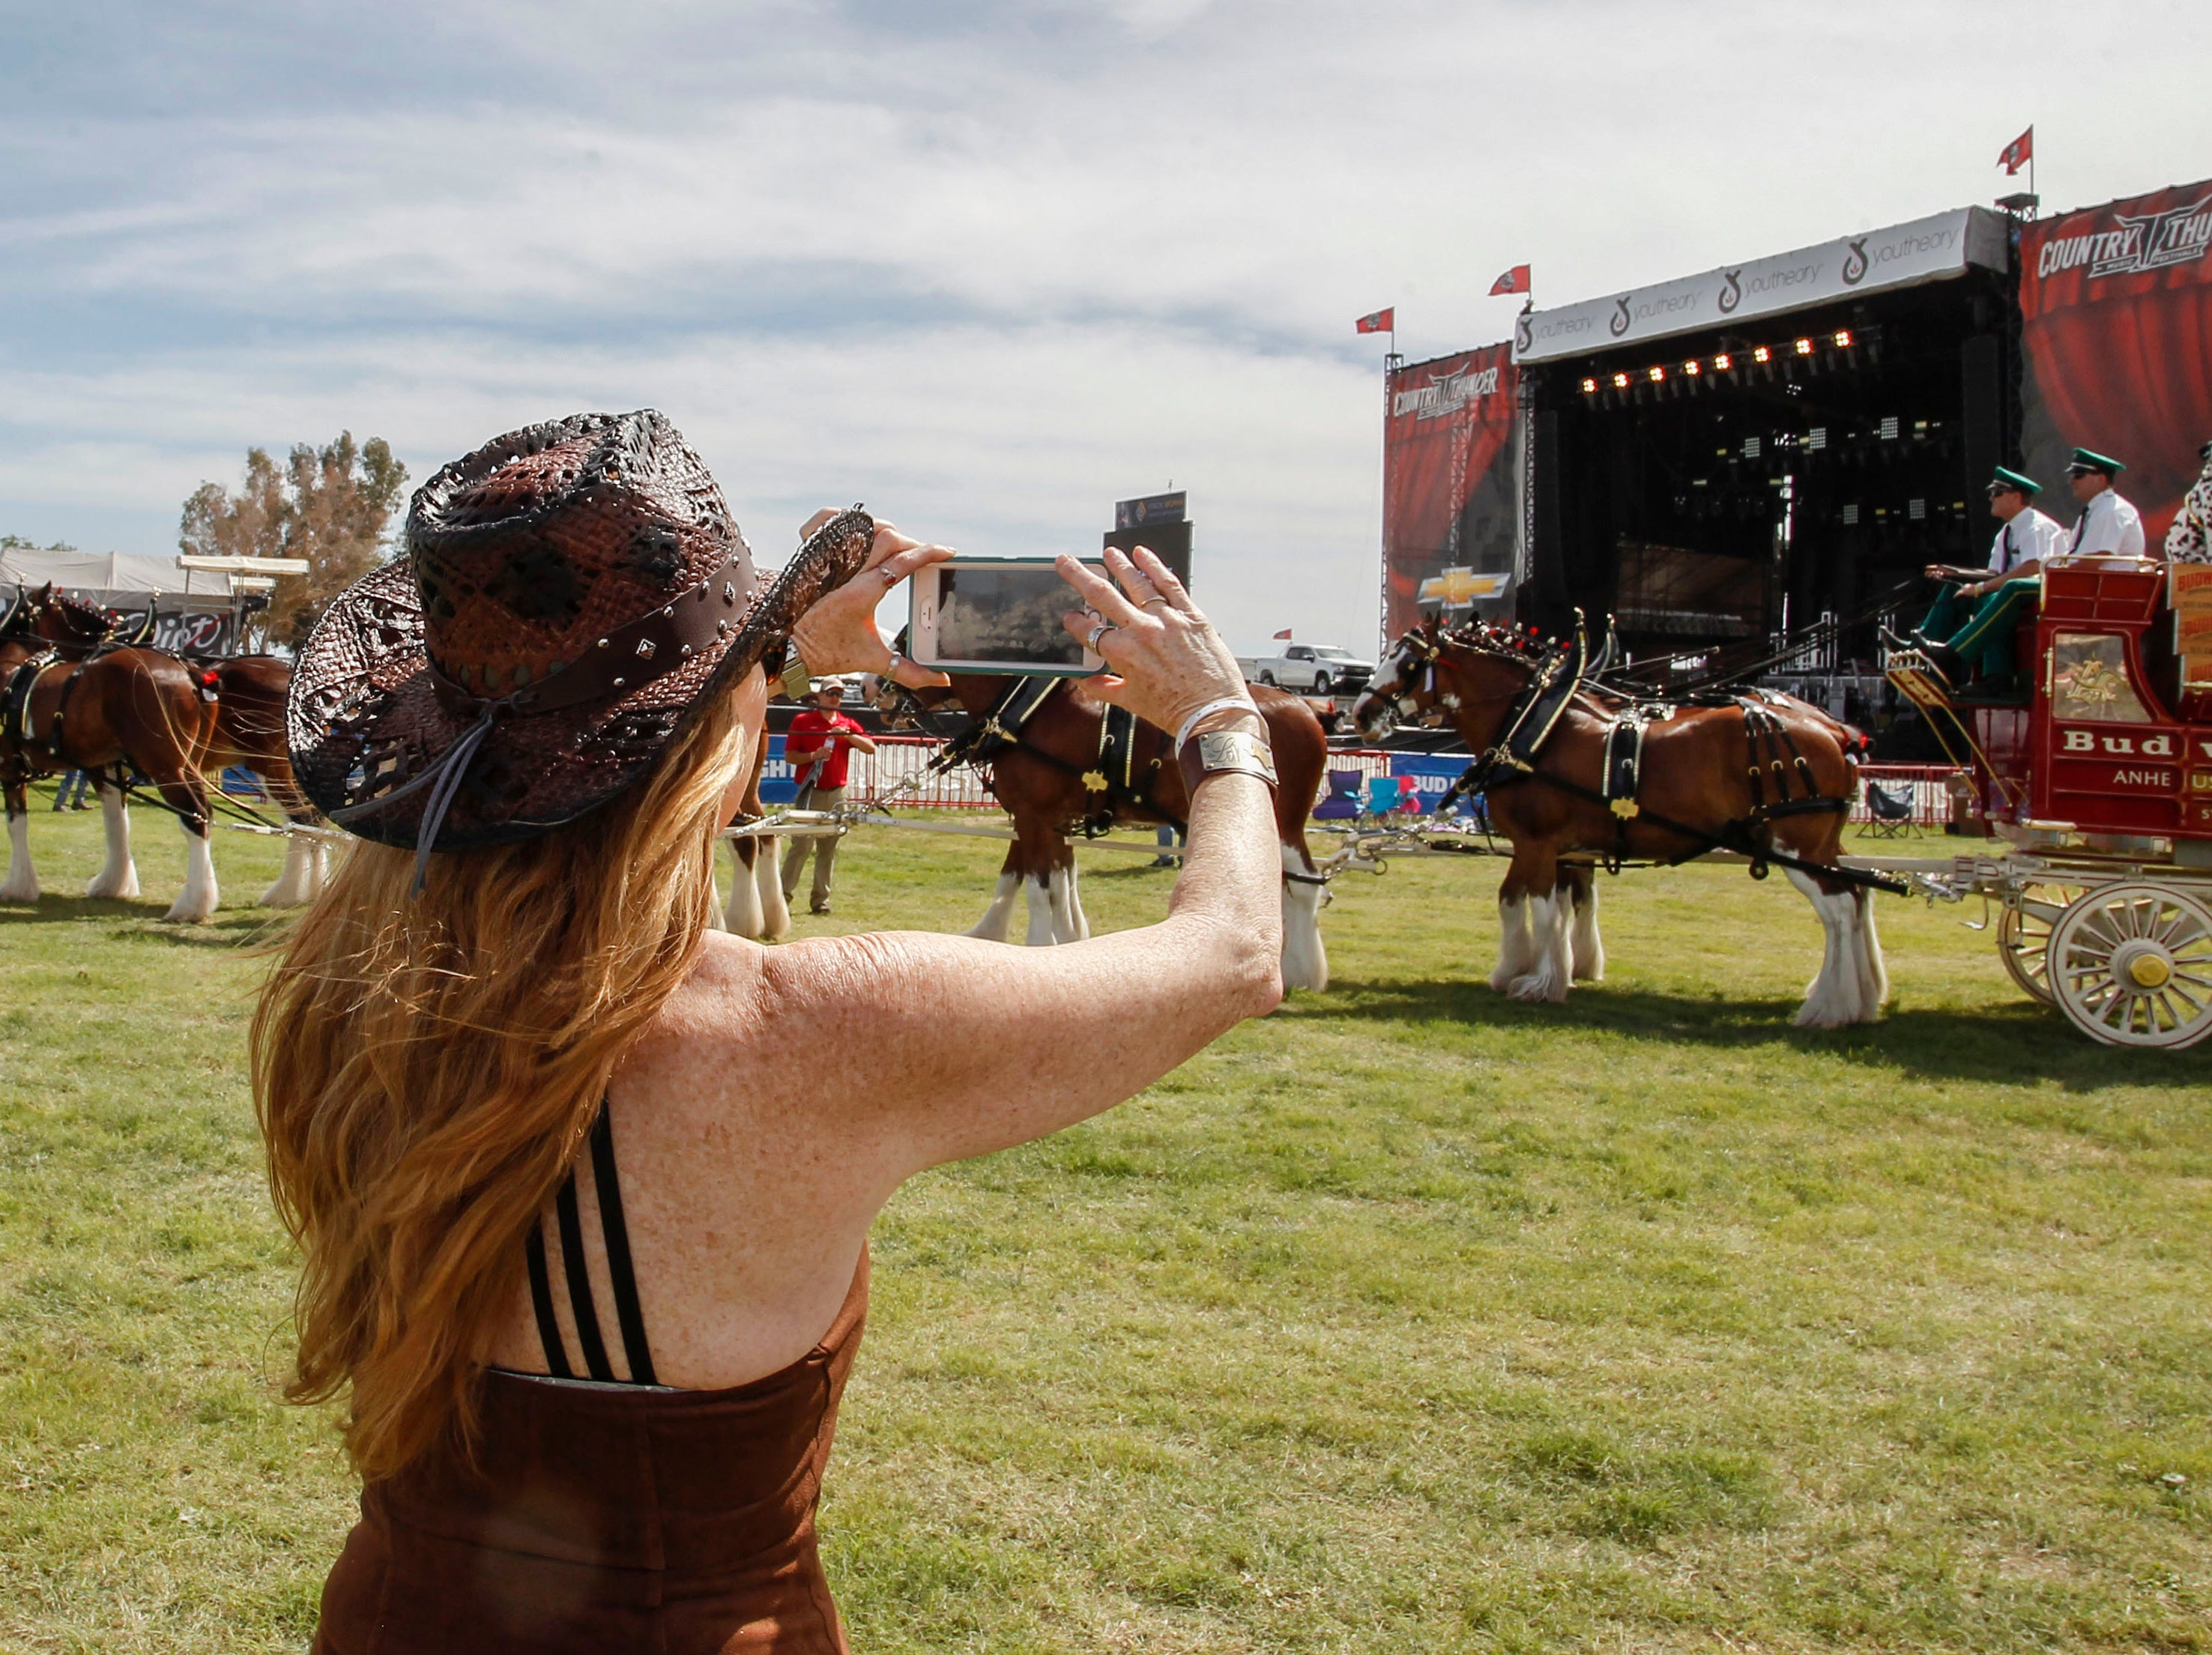 Lavera Pettus of Texas takes a photo of the Budweiser Clydesdales as they strut their stuff during Country Thunder Arizona on April 11, 2019, in Florence.